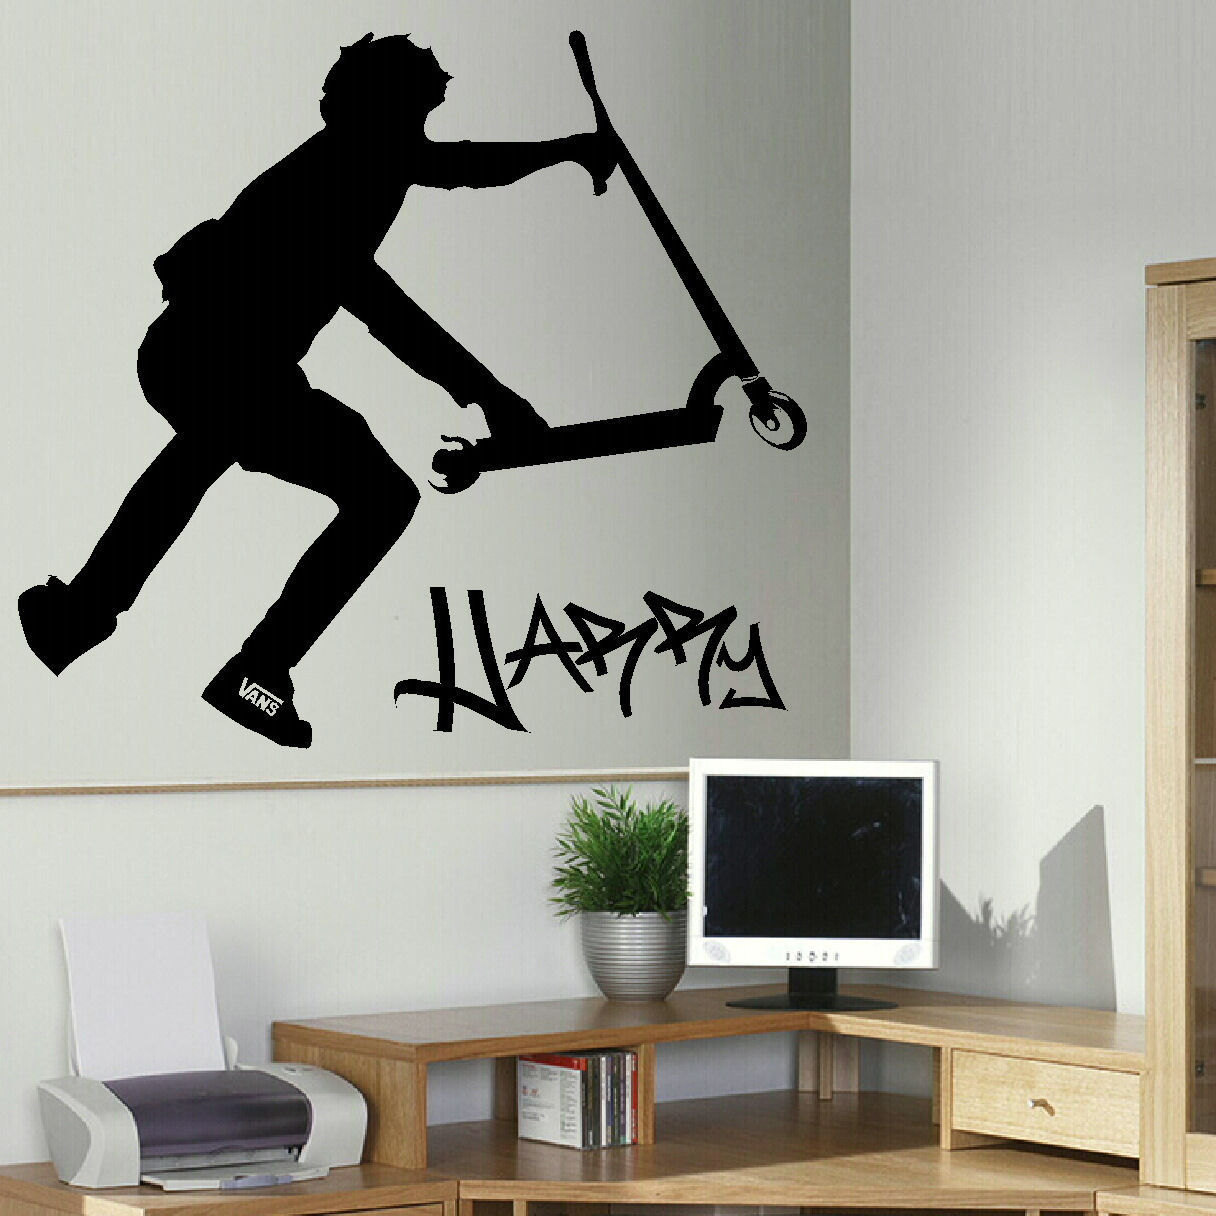 Scooter wall stickers gallery home wall decoration ideas extra large personalised stunt scooter wall transfer art zoom amipublicfo gallery amipublicfo Gallery